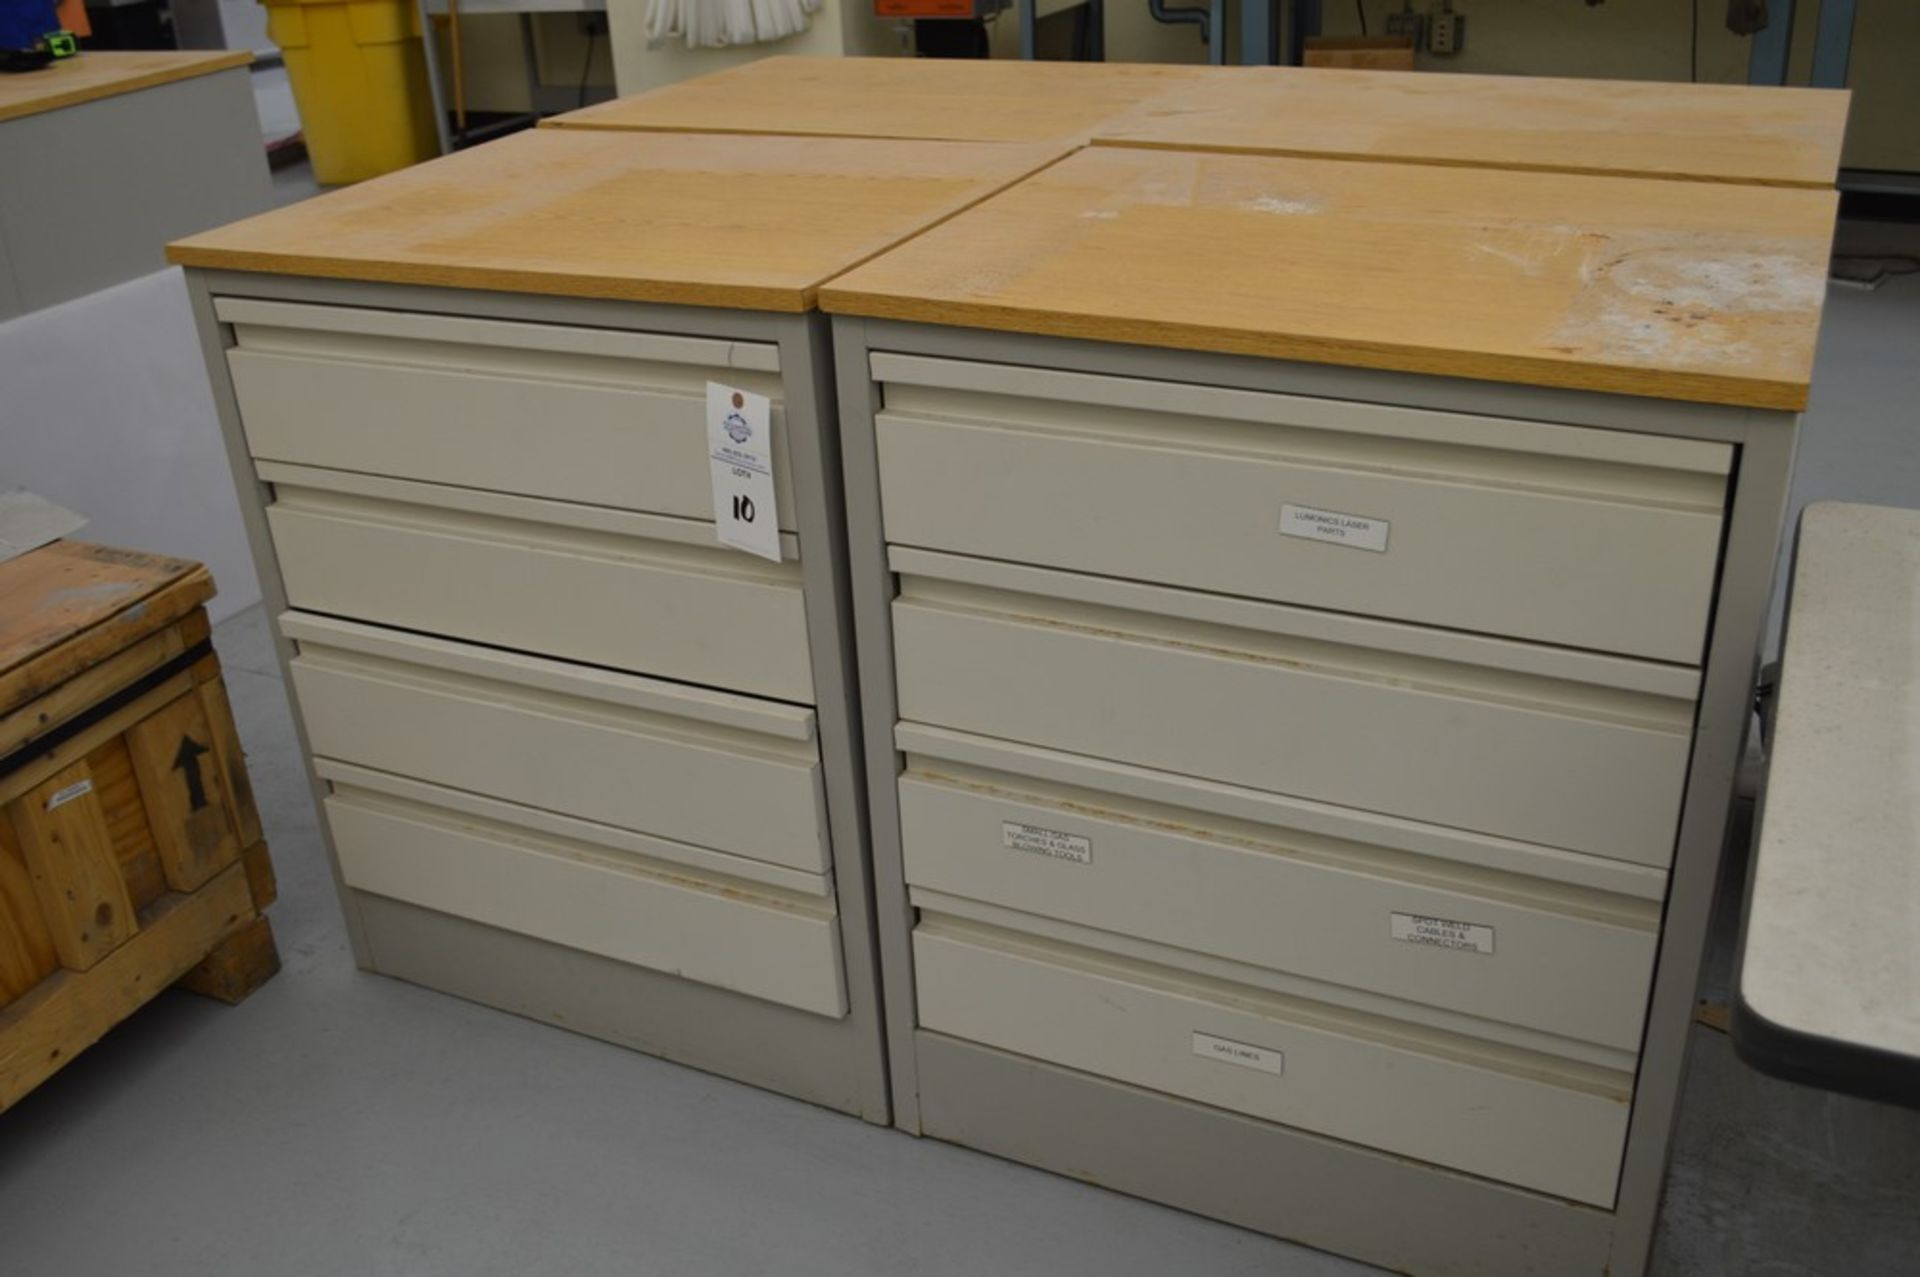 """(3) 4 Drawer Metal Cabinets with wood finished formica tops, 24"""" x 30.5"""", 36.5"""" Tall - Image 2 of 5"""